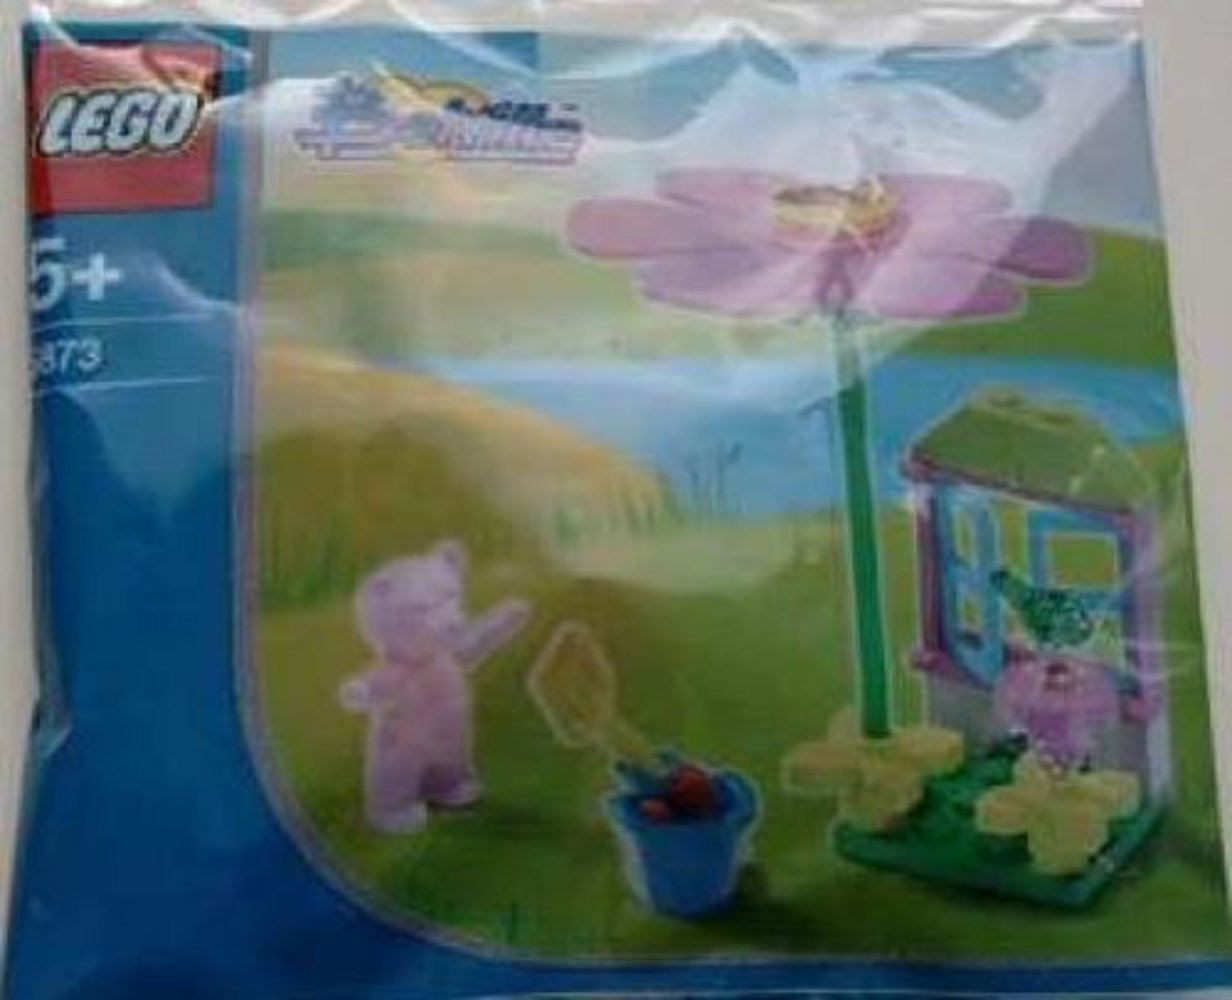 Fairyland Promo (Polybag)